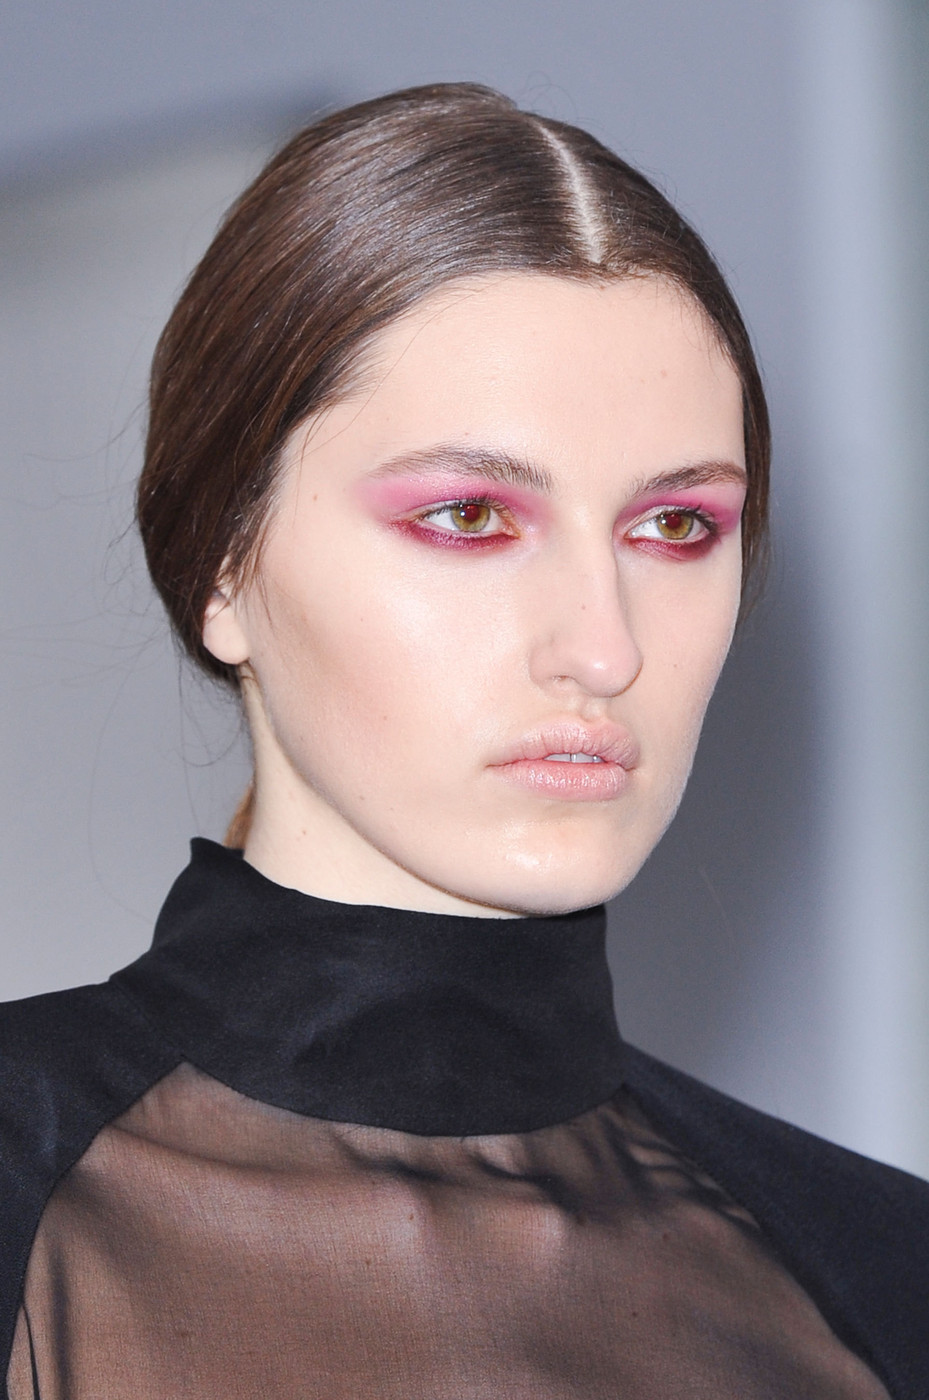 Dare To Try The Pink Eyeshadow Trend Dare To Try The Pink Eyeshadow Trend new foto